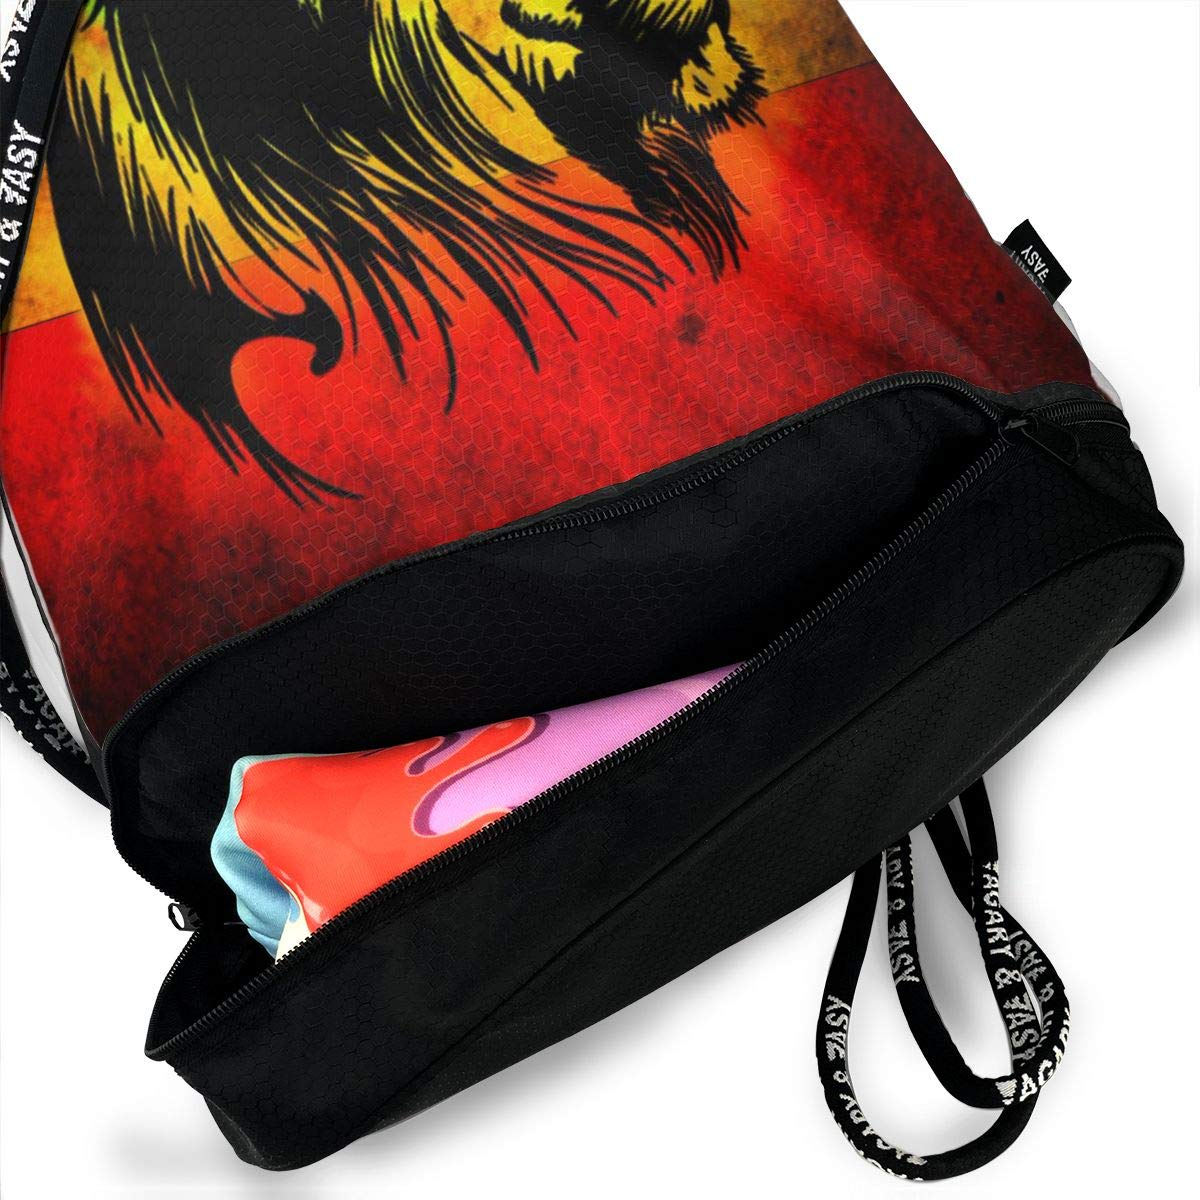 HUOPR5Q Lion-Flag Drawstring Backpack Sport Gym Sack Shoulder Bulk Bag Dance Bag for School Travel